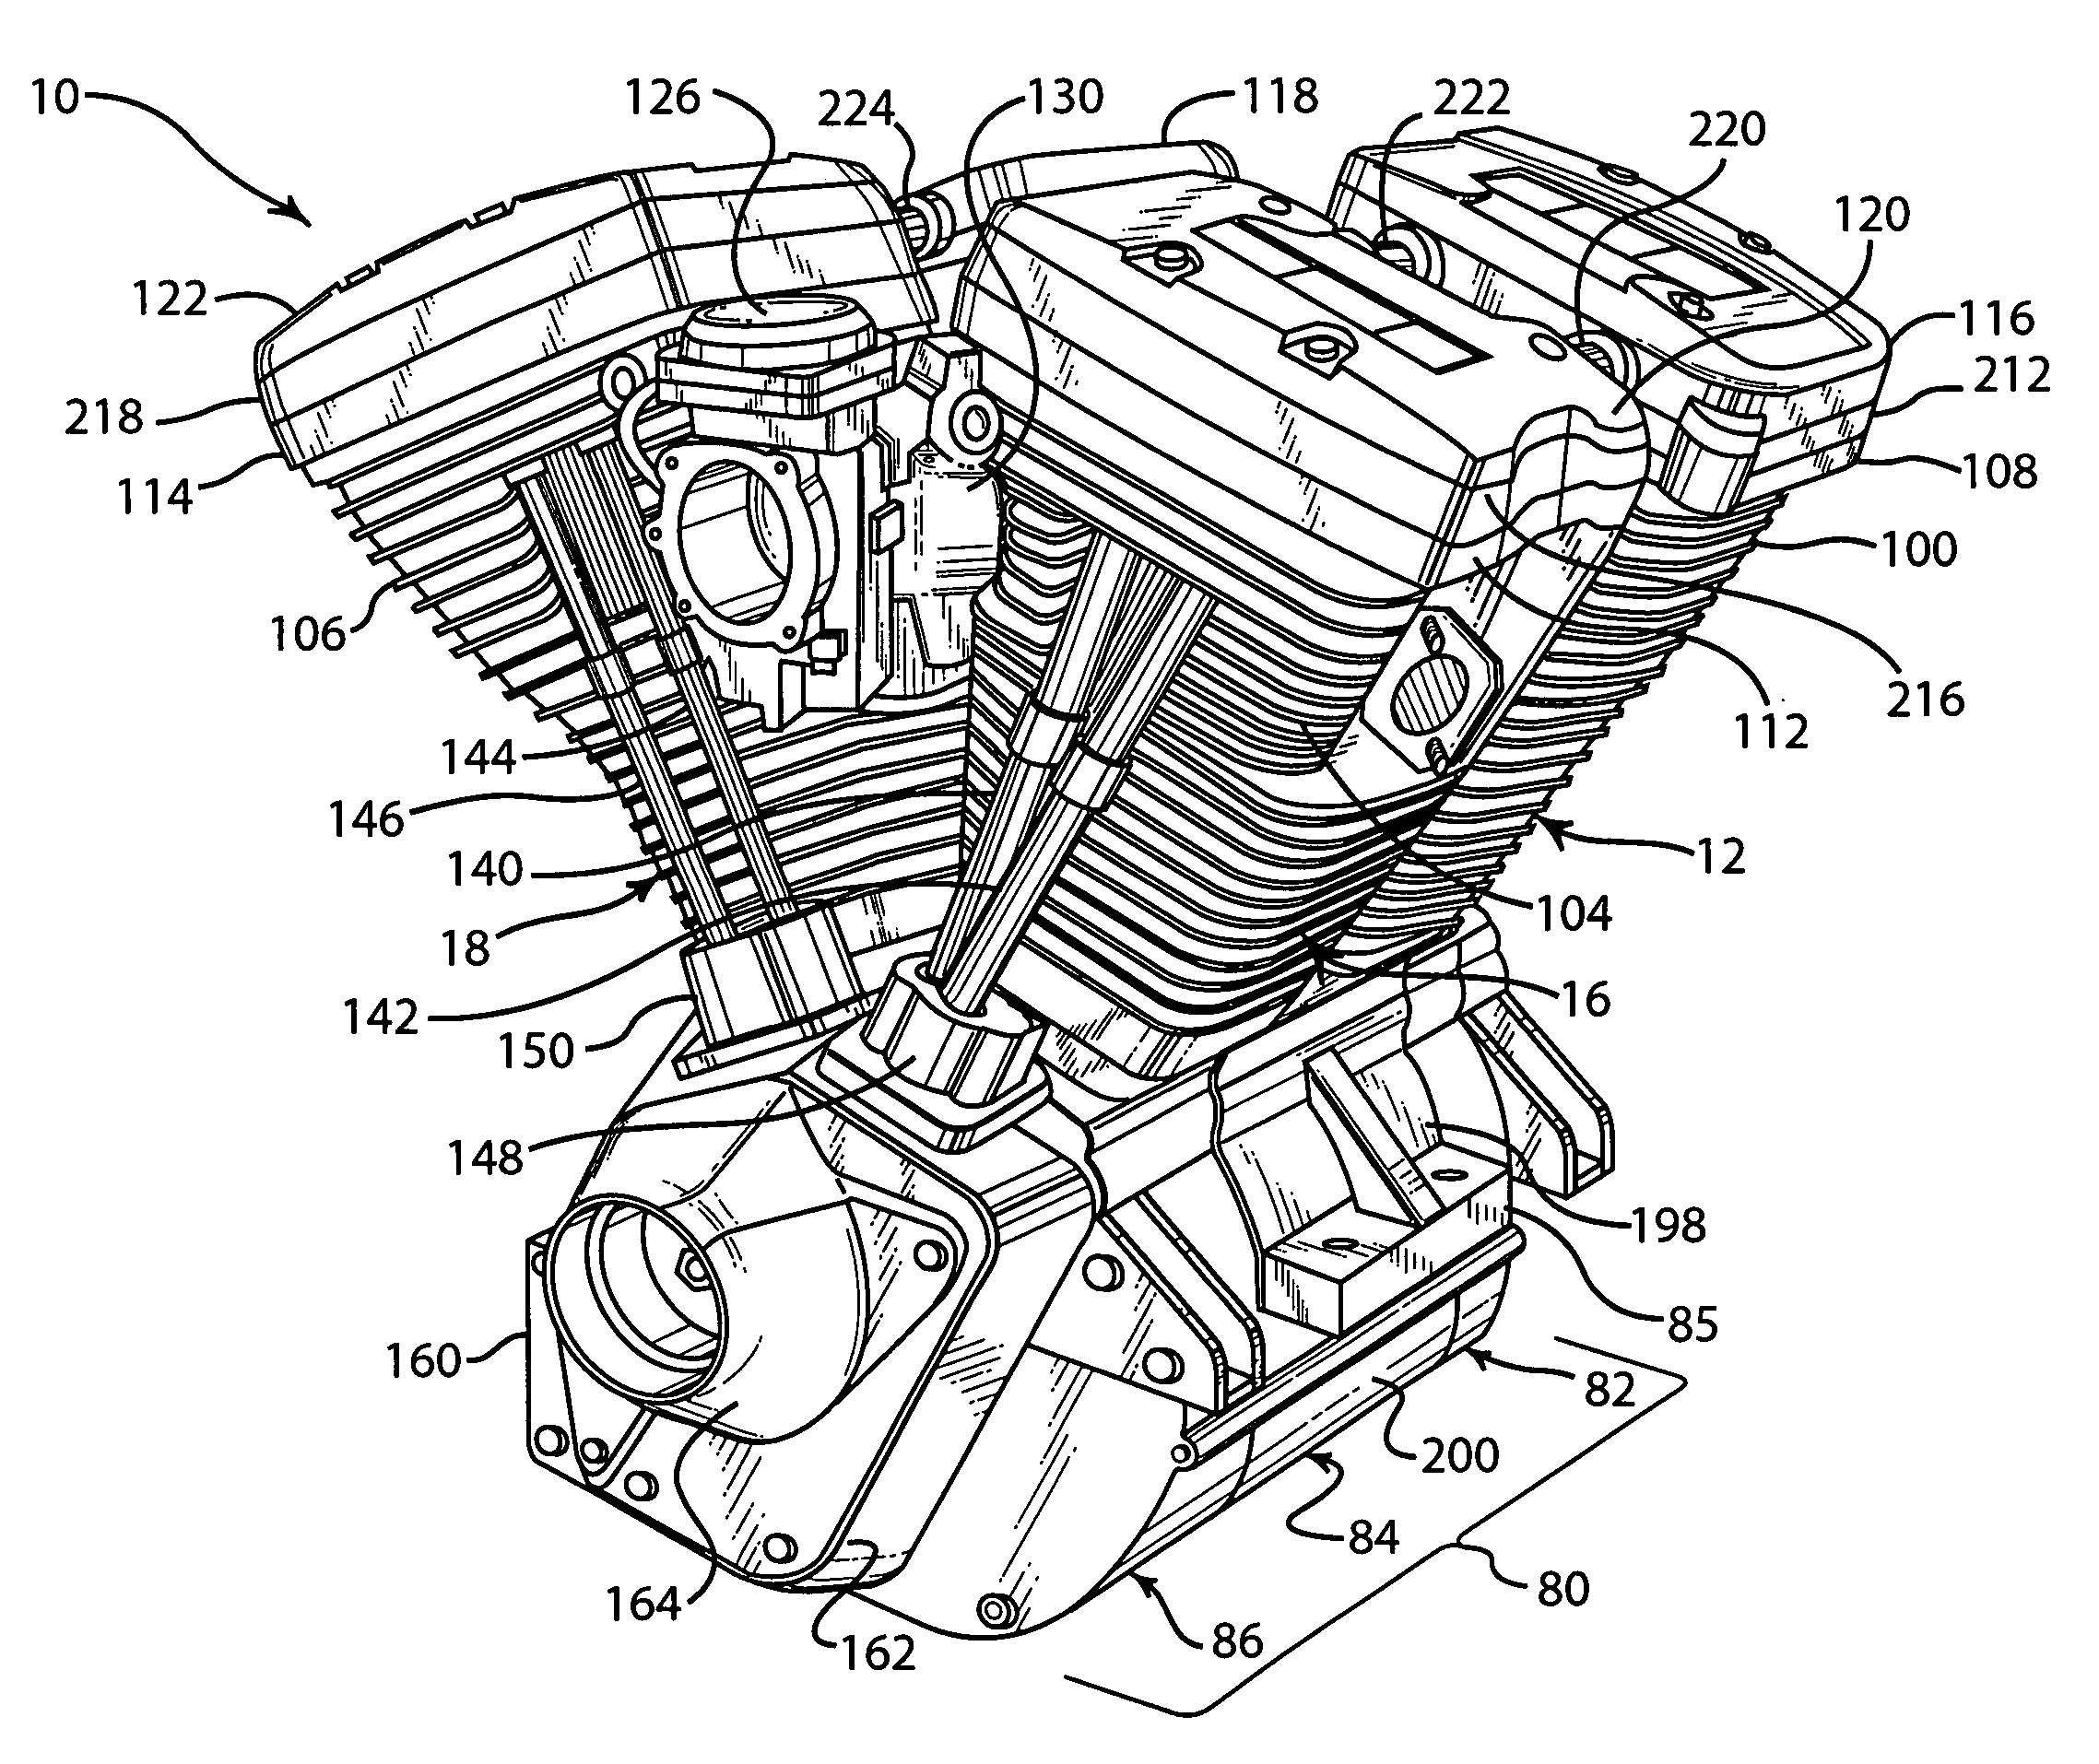 V Twin Motorcycle Engine Diagram